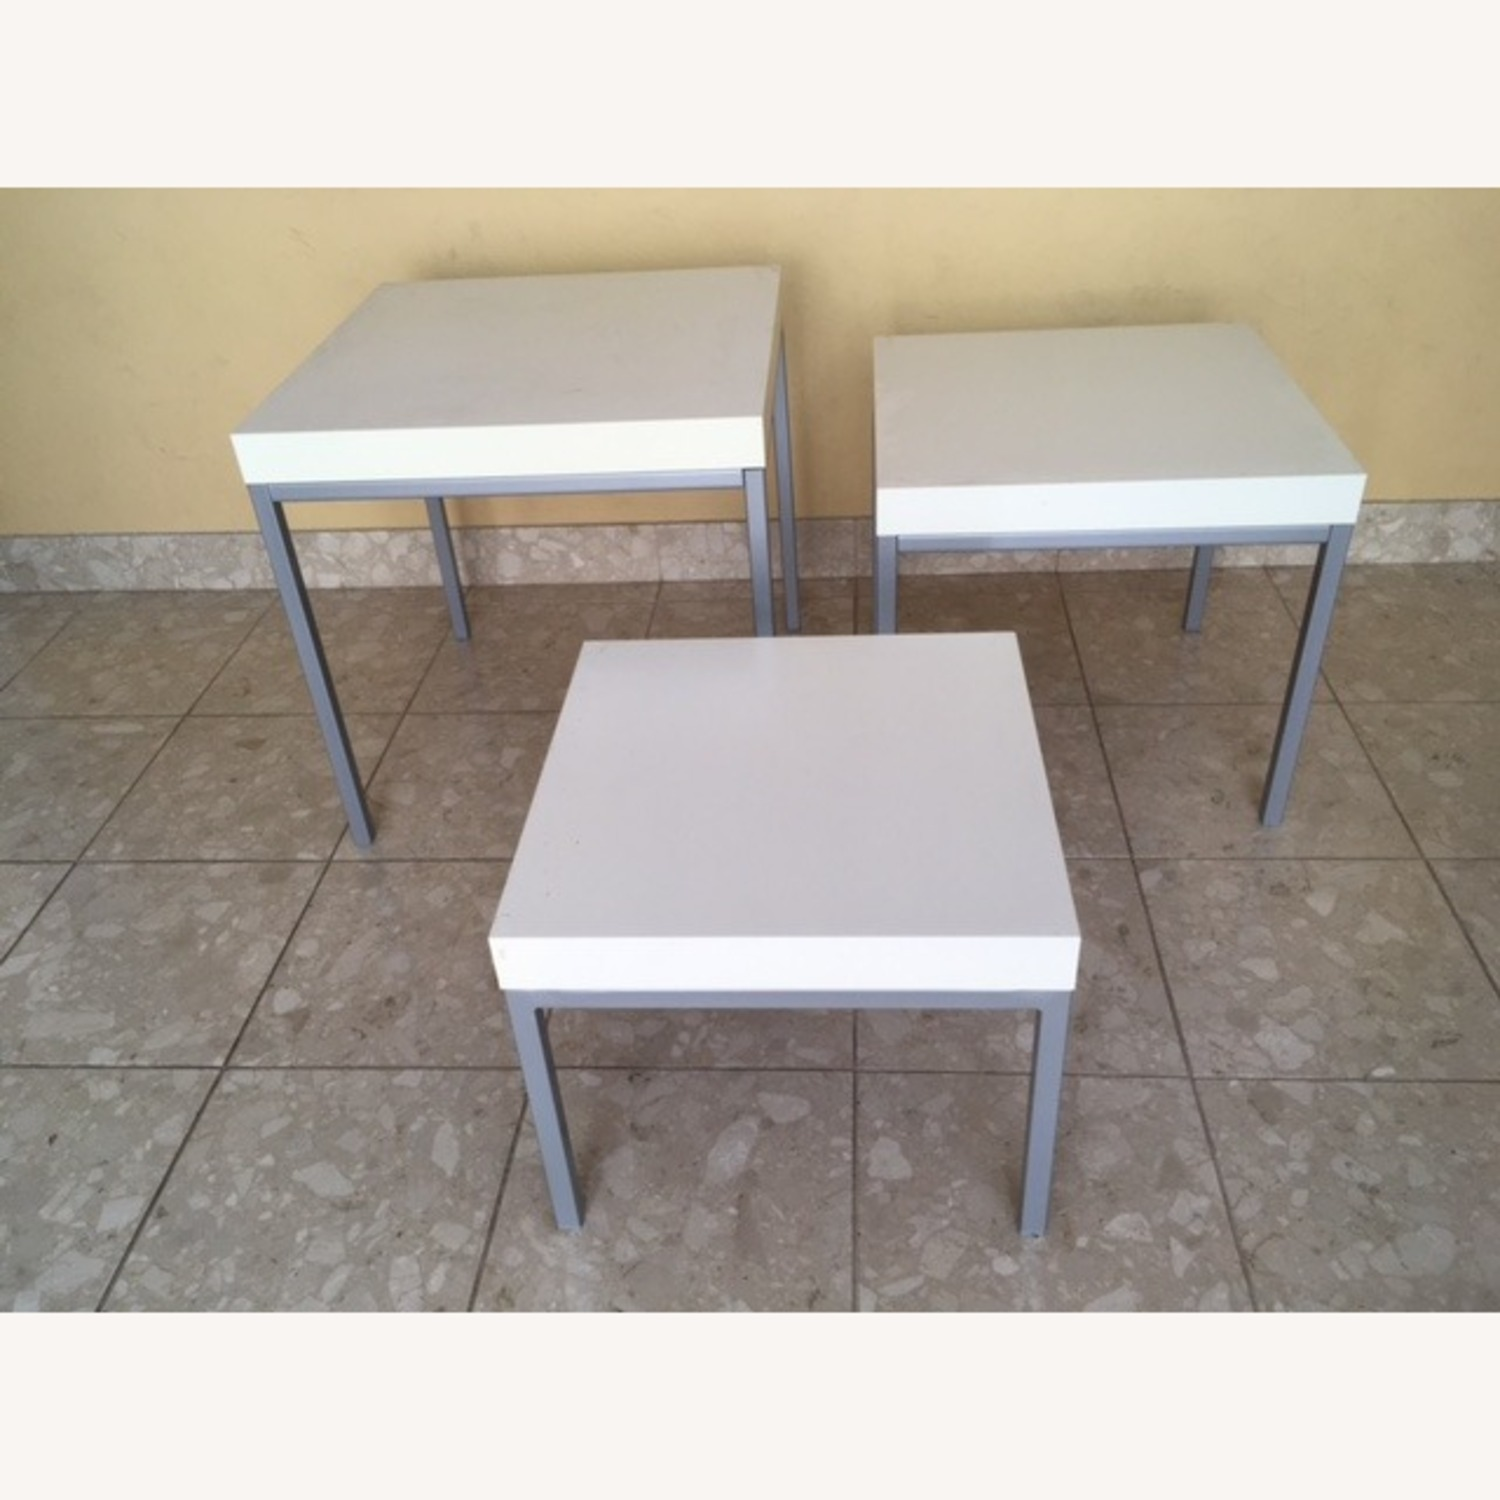 Nested Coffee Tables - image-3